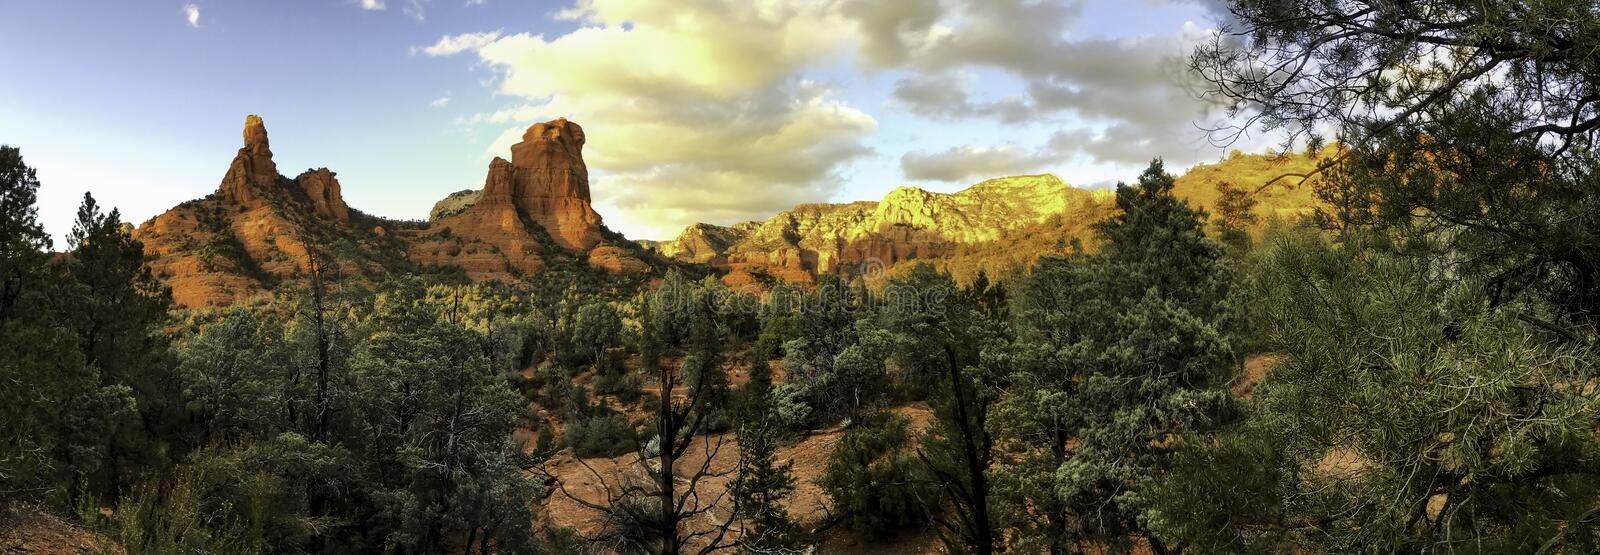 Le rouge de Sedona bascule le panorama, Arizona photos stock